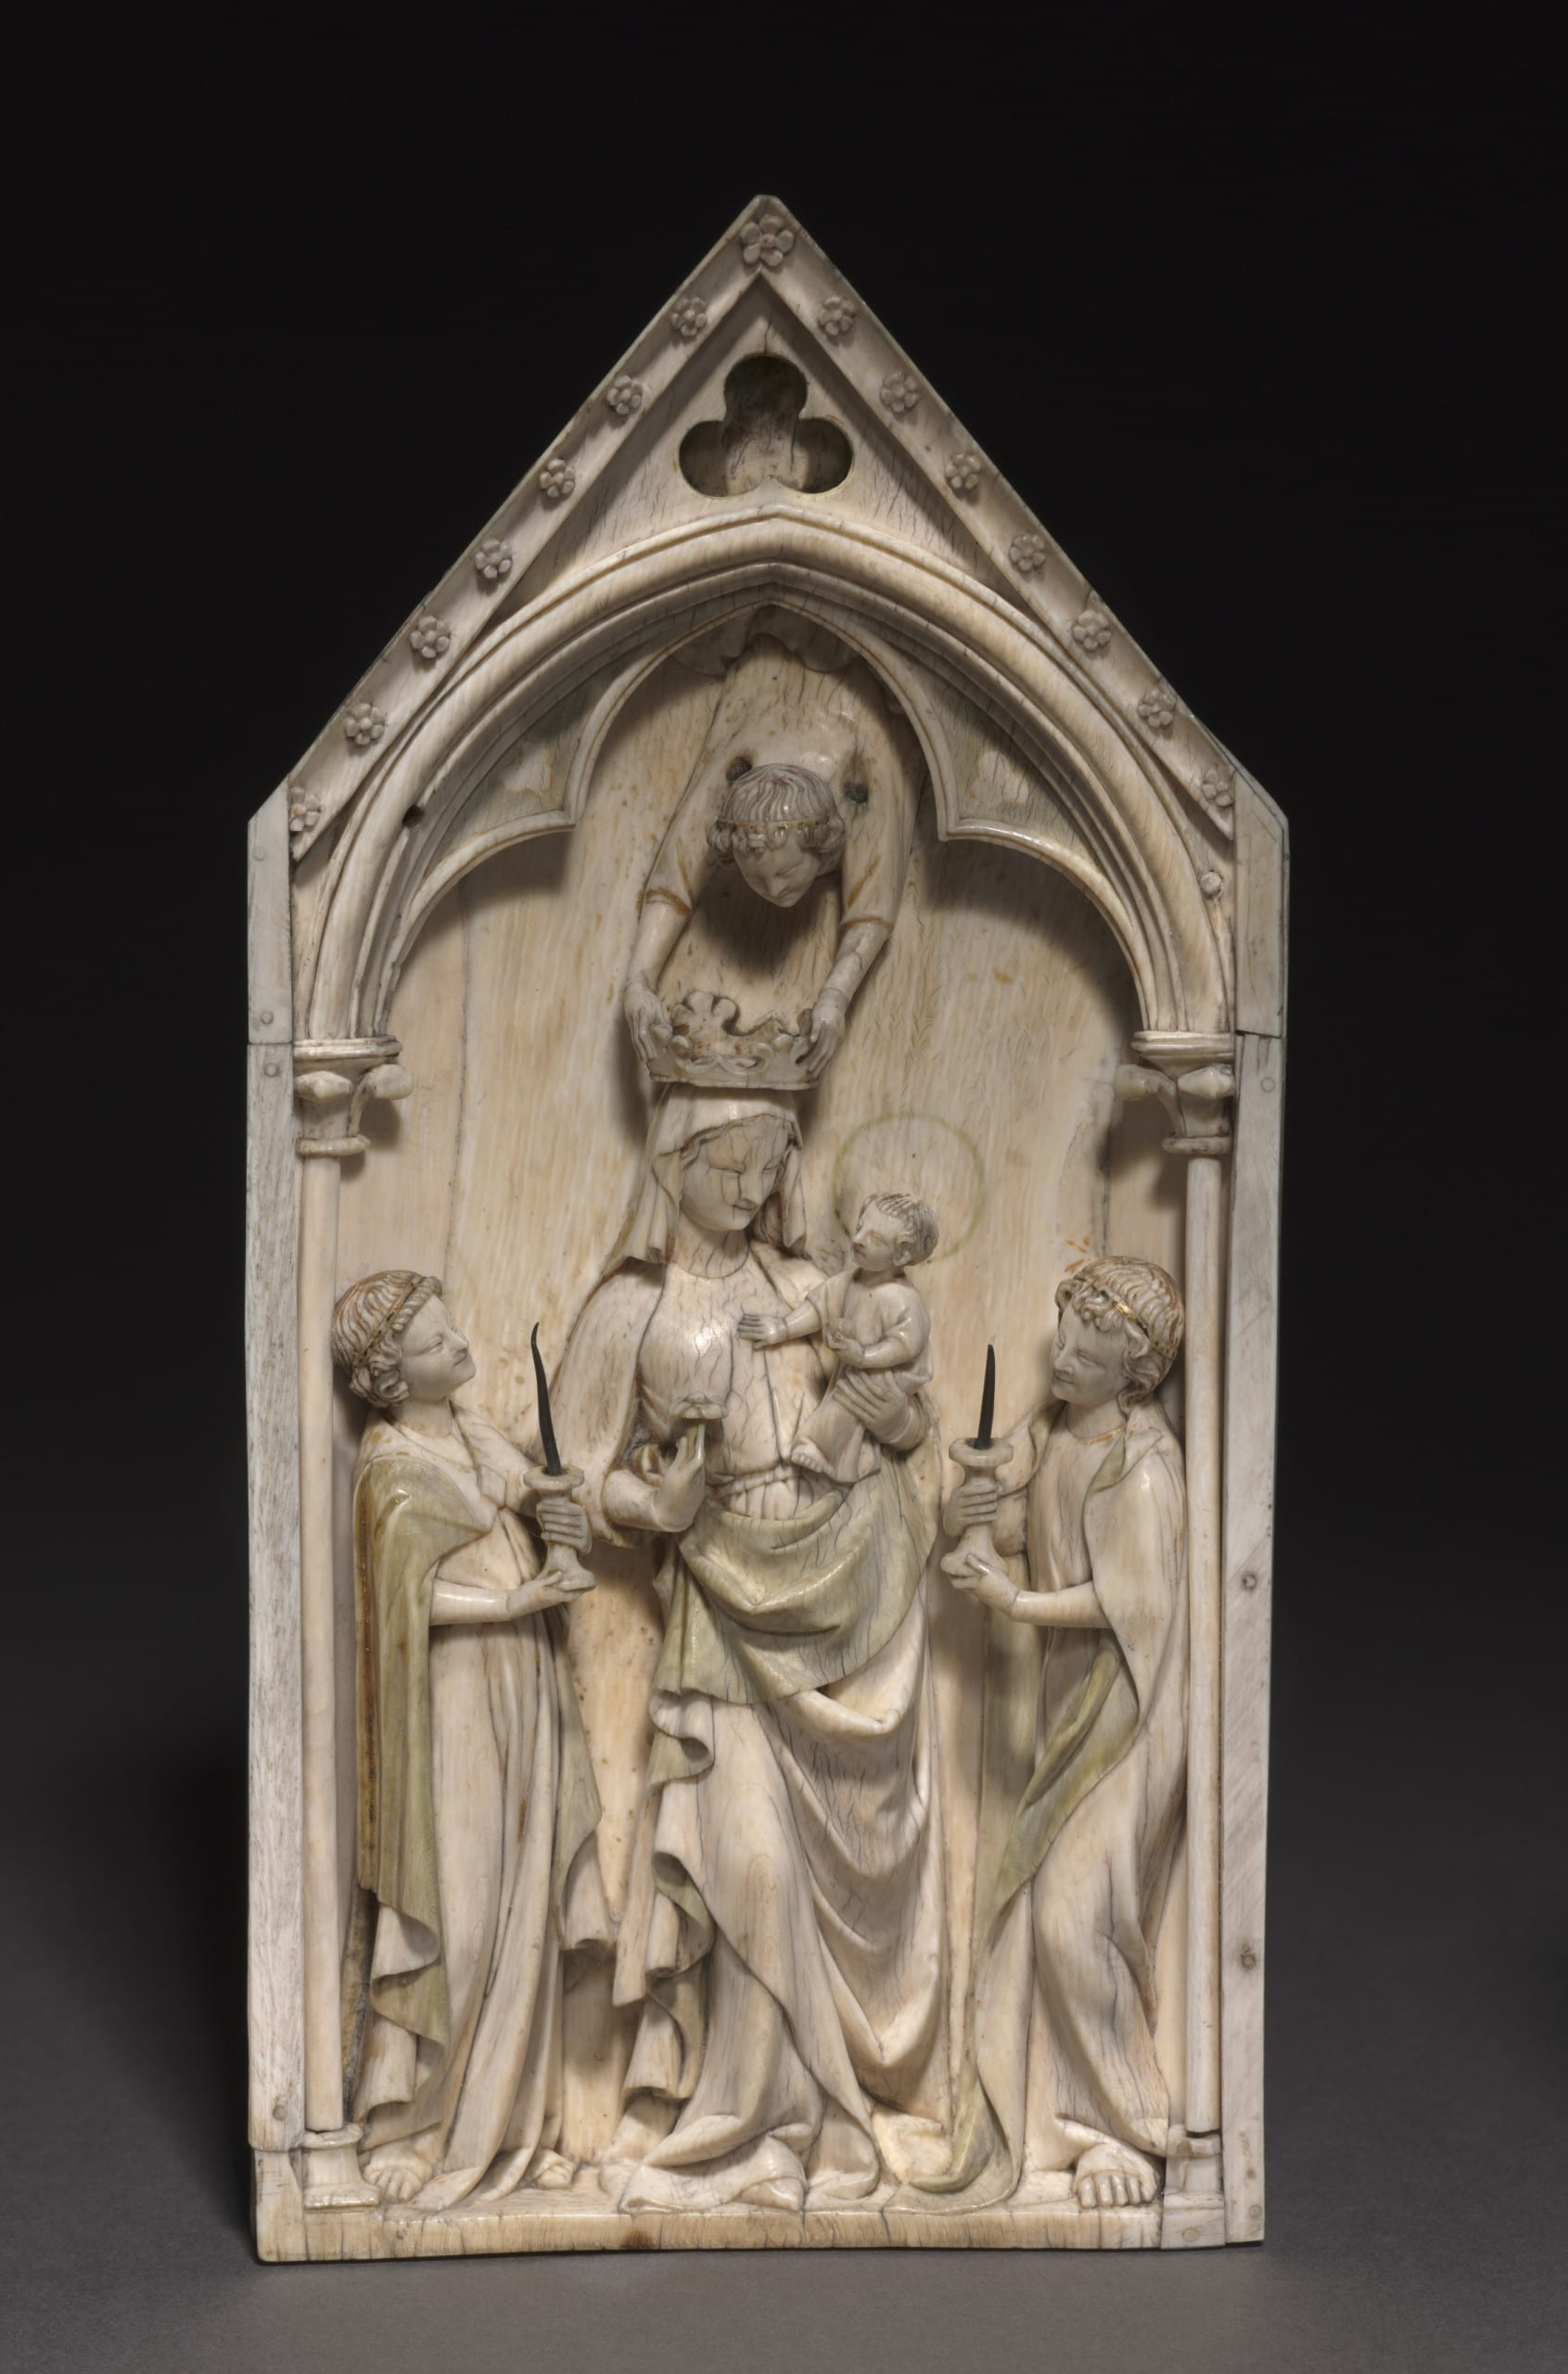 Figure 2. Coronation of the Virgin, central panel of an ivory triptych. Paris, 1320-1330